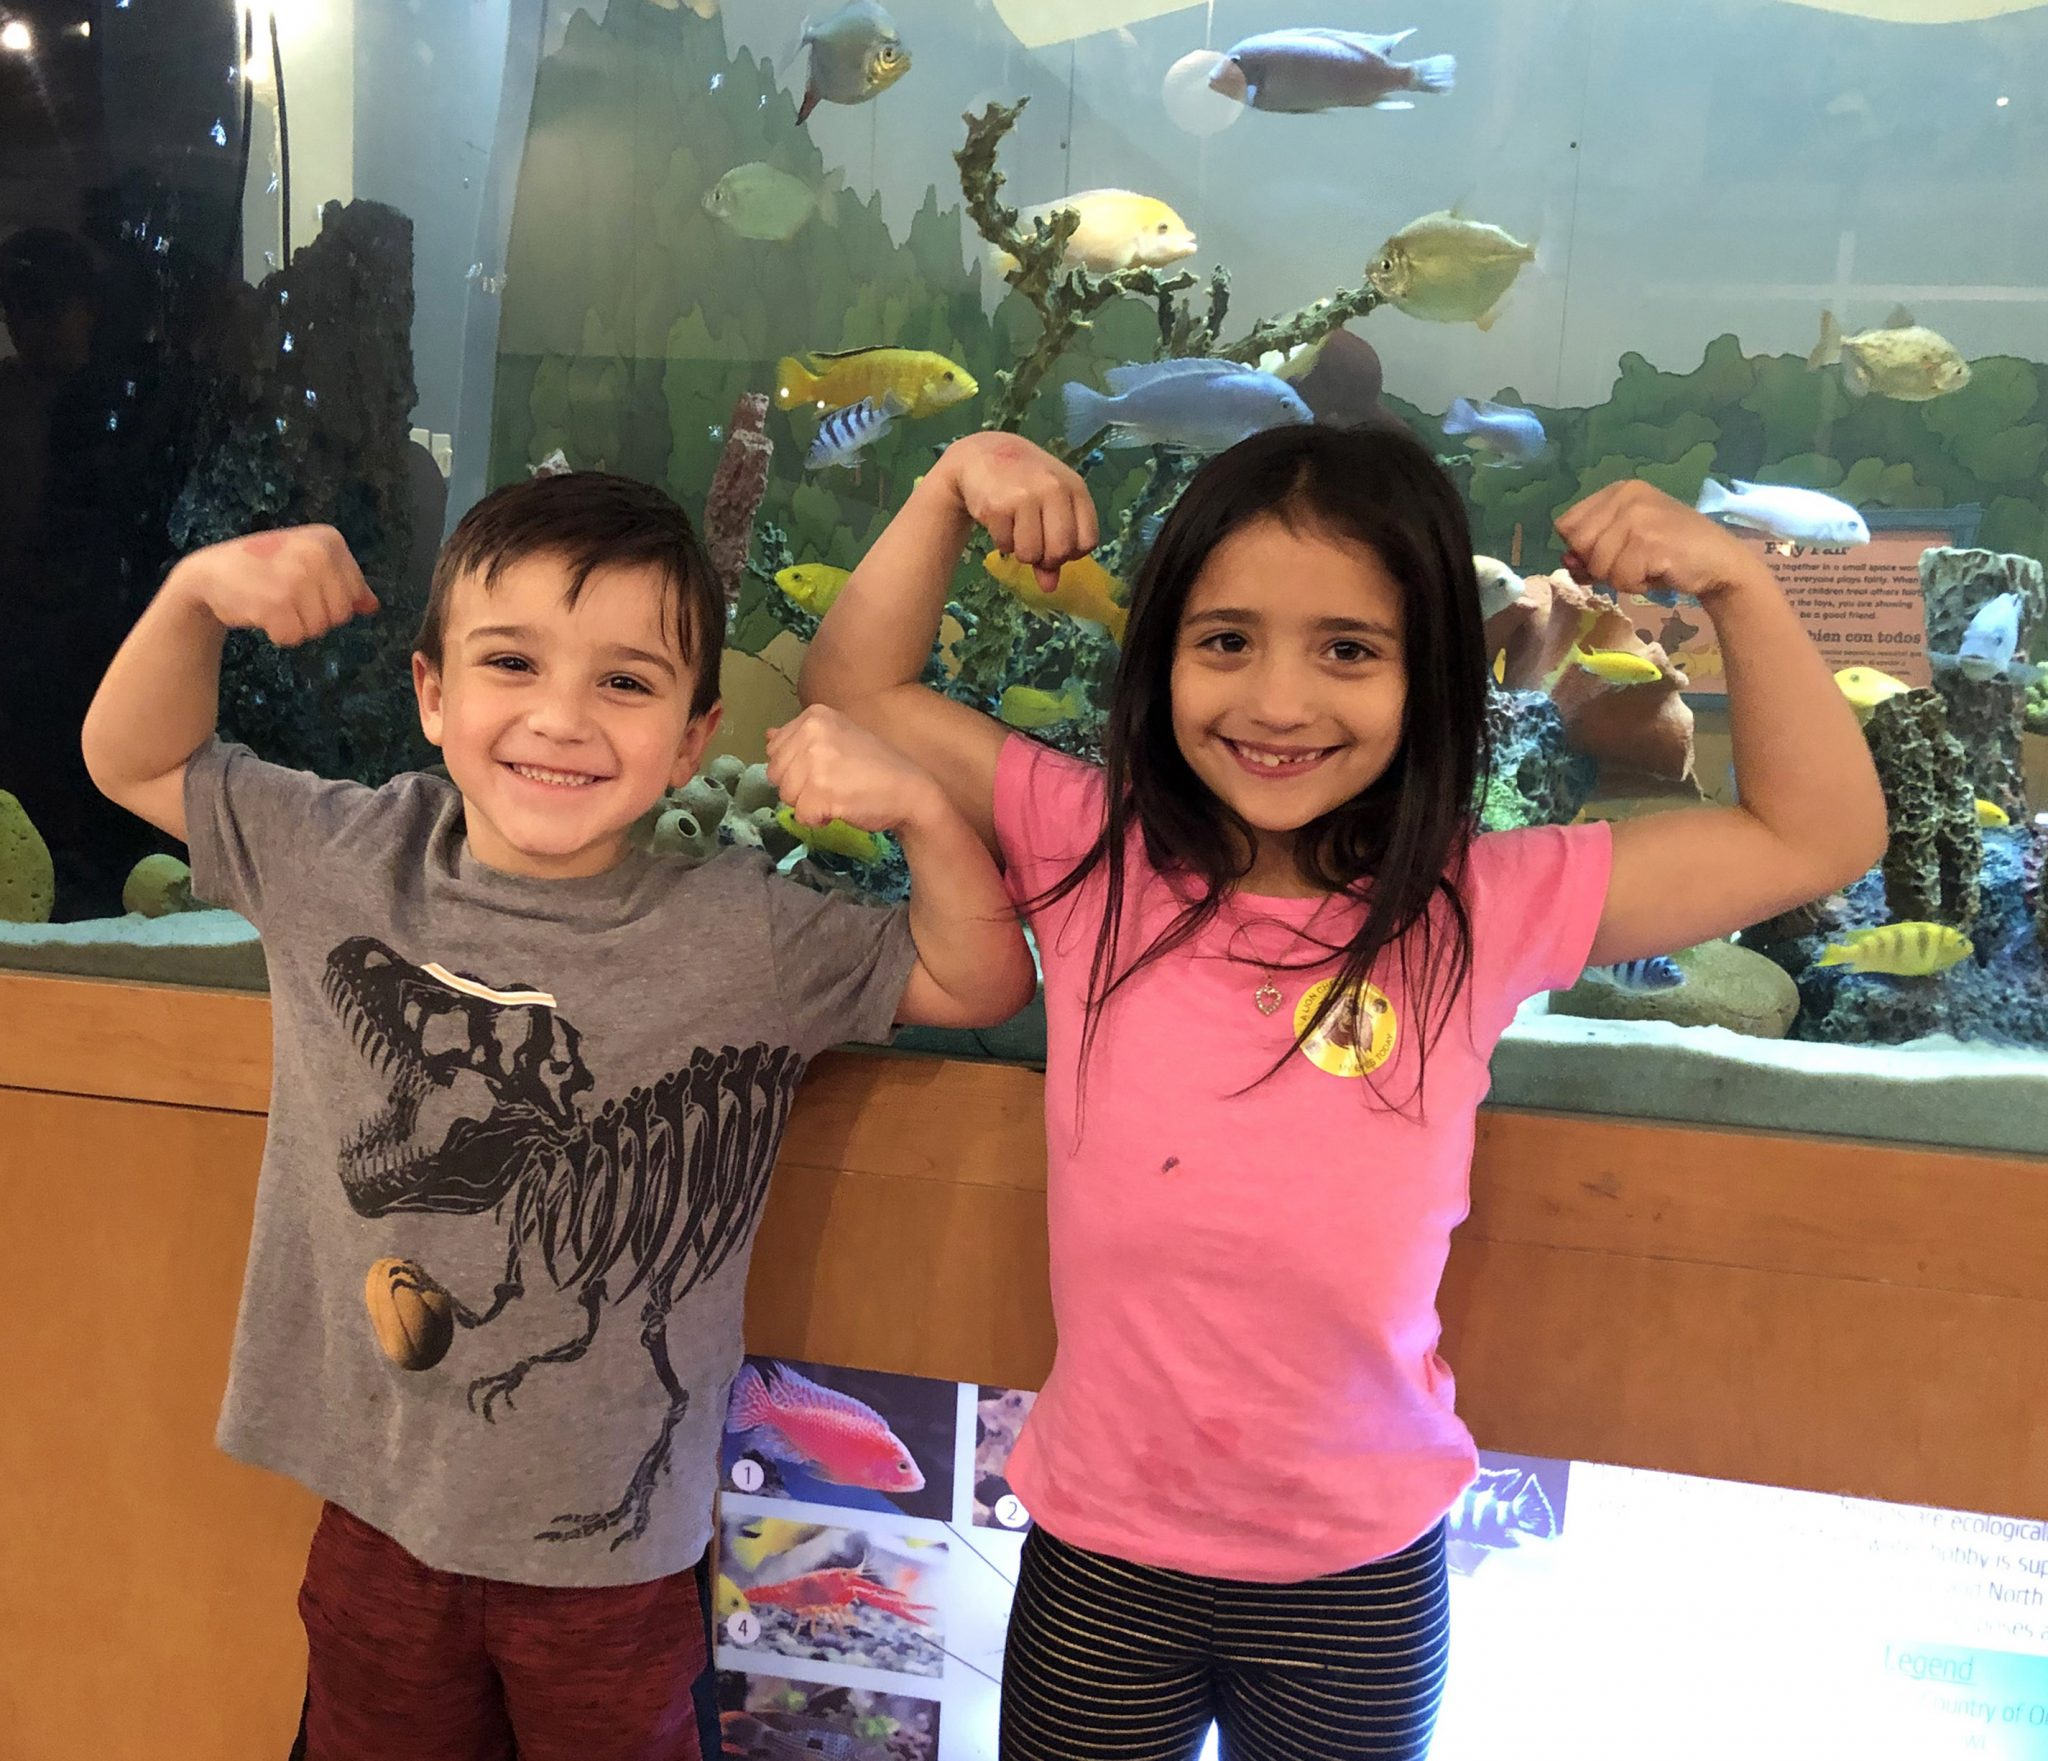 Fitness Frenzy at The Woodlands Children's Museum — Food samples, fitness demos, stuffed animal check-ups and more at annual event